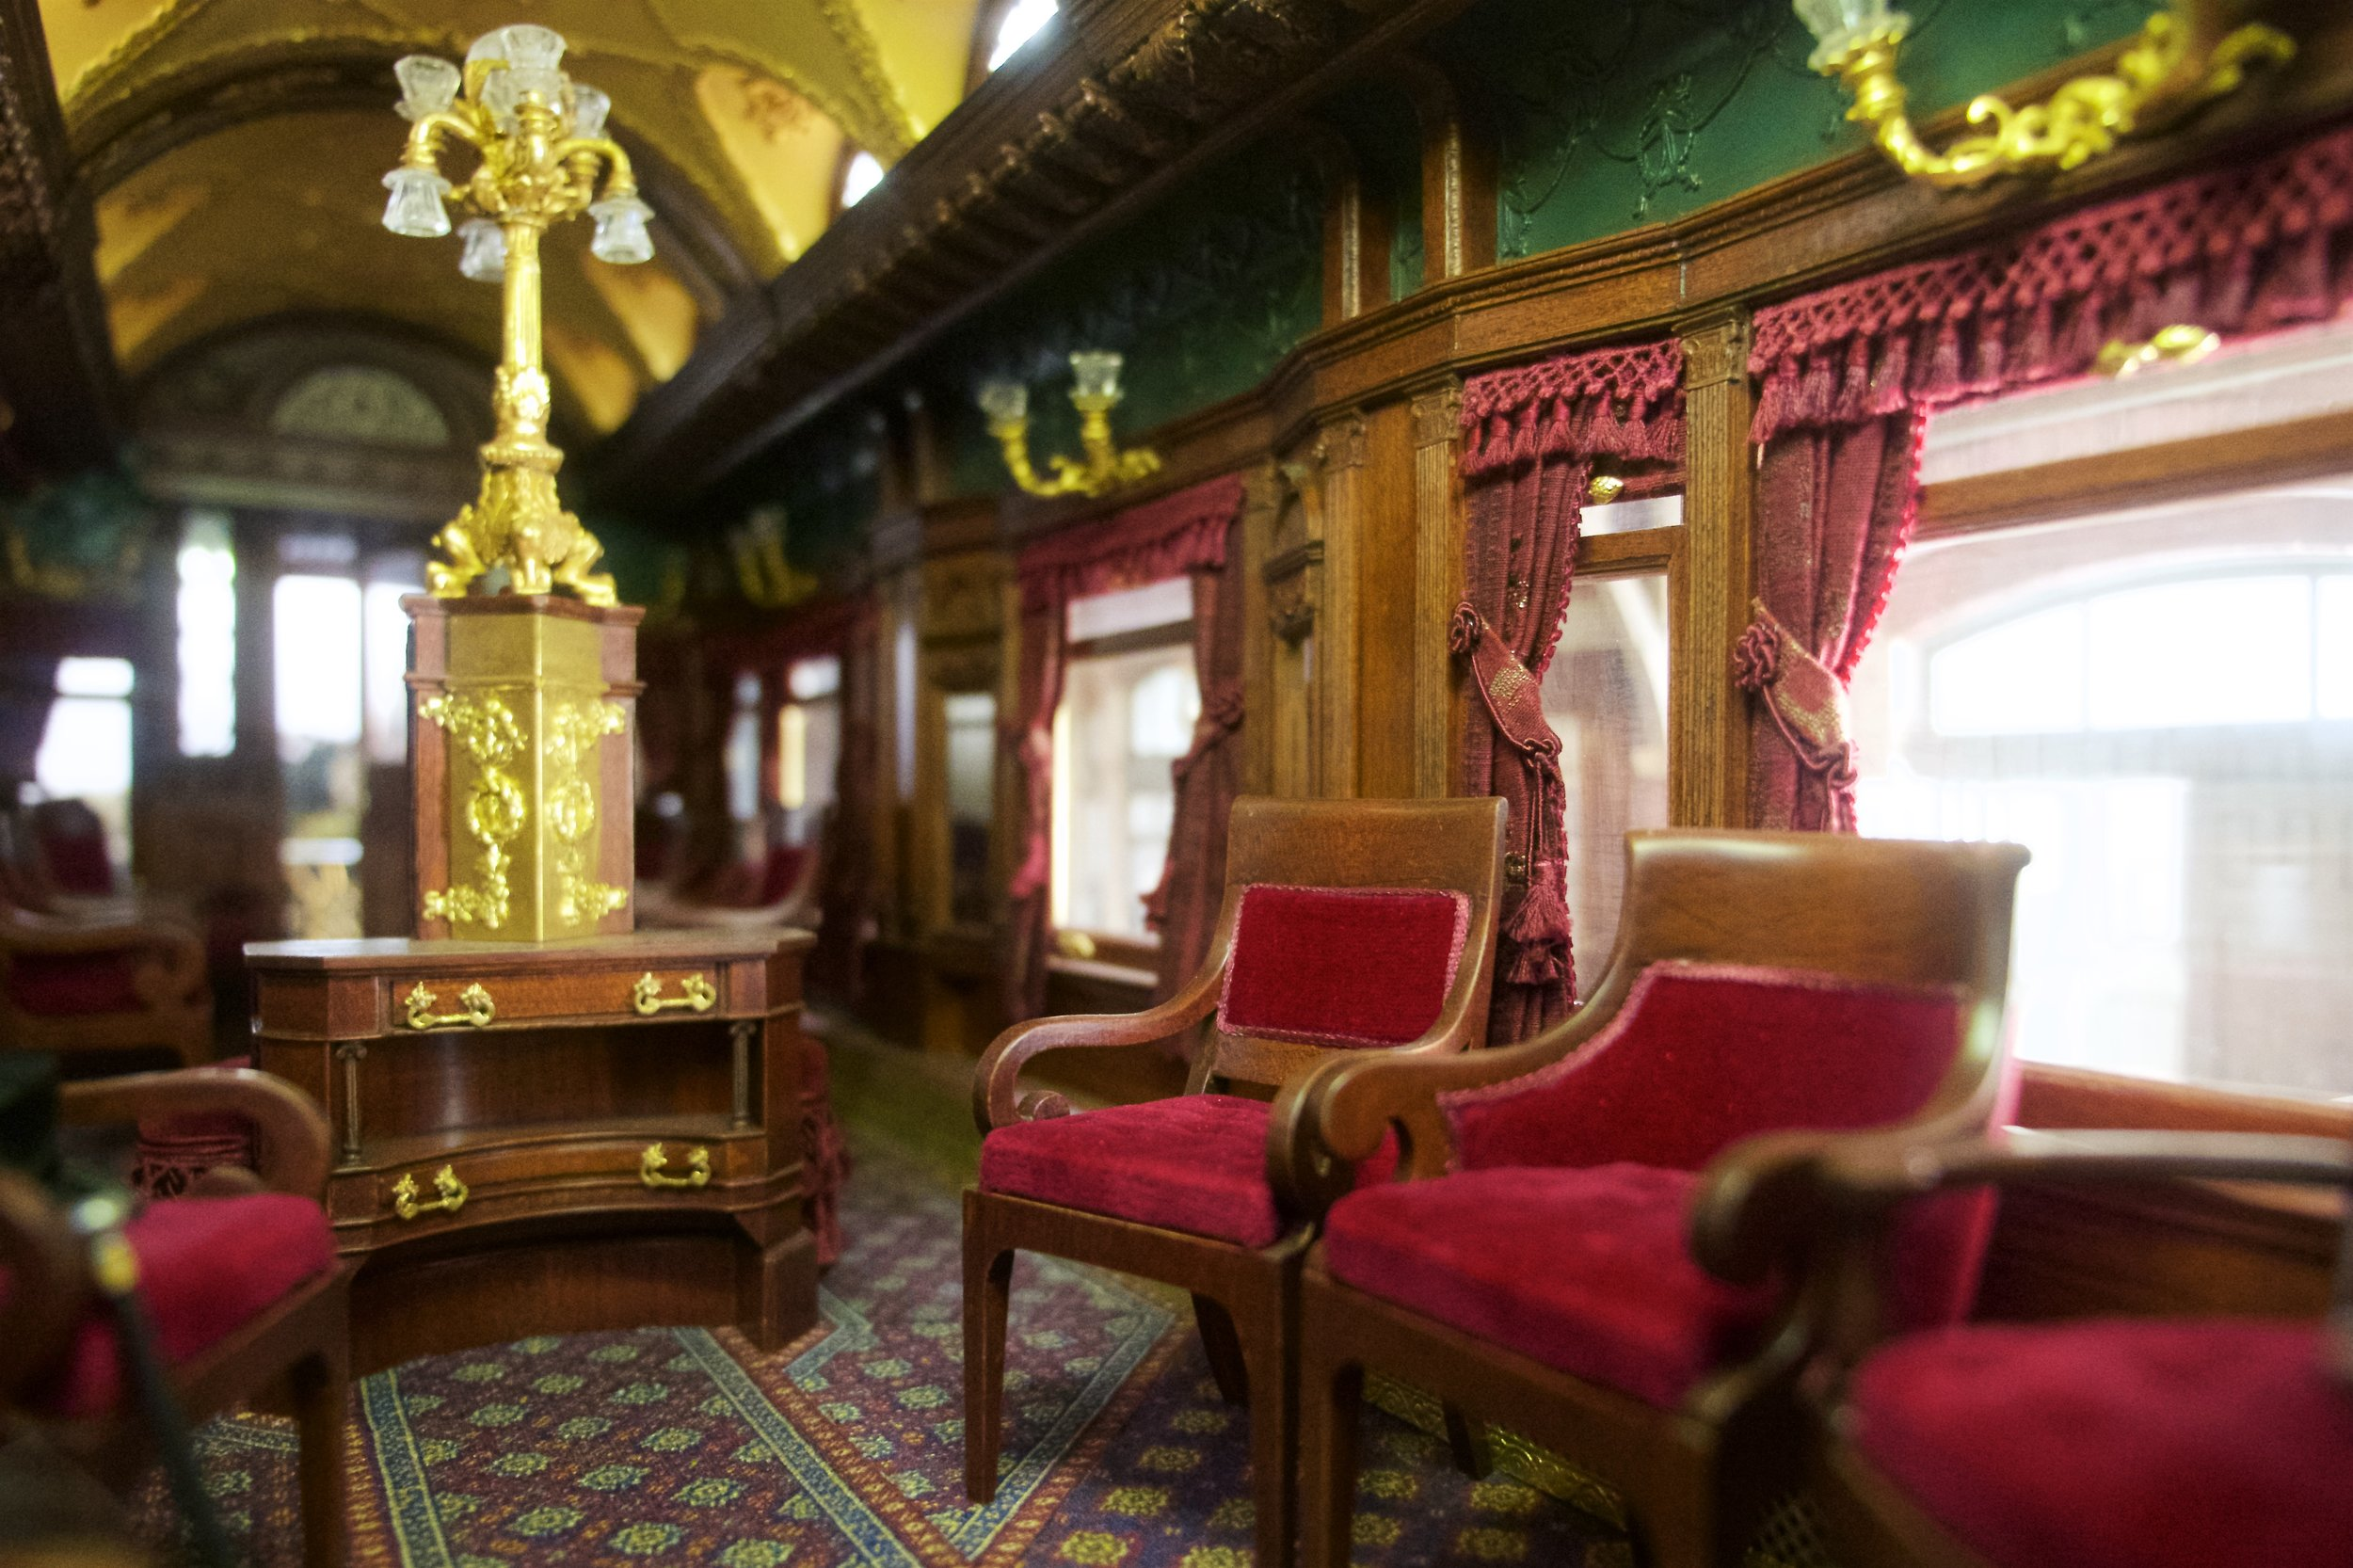 Pullman observation car, miniature rooms gallery